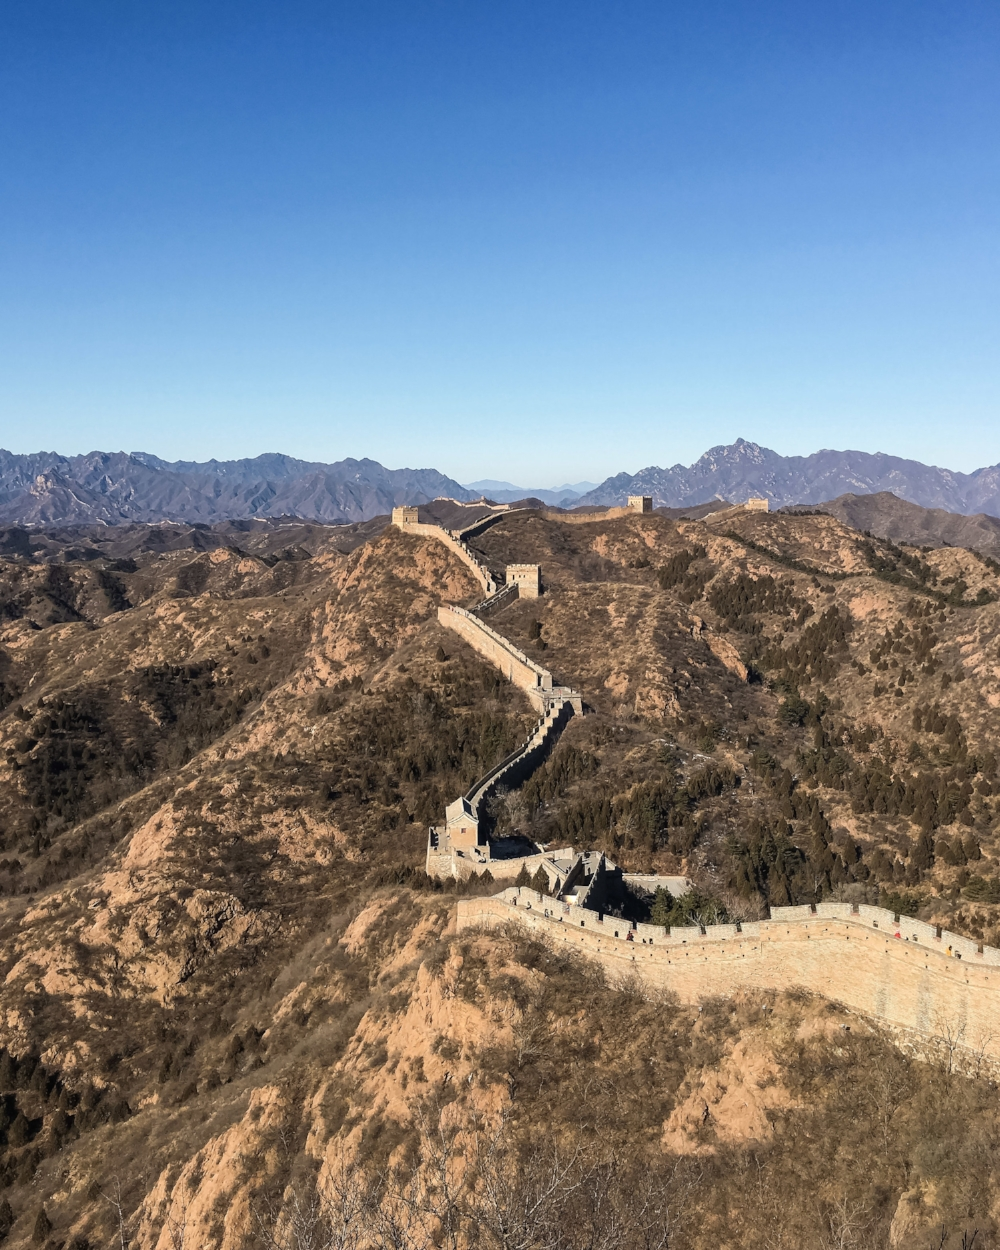 curio.trips.china.beijing.great.wall.of.china.view-2.jpg